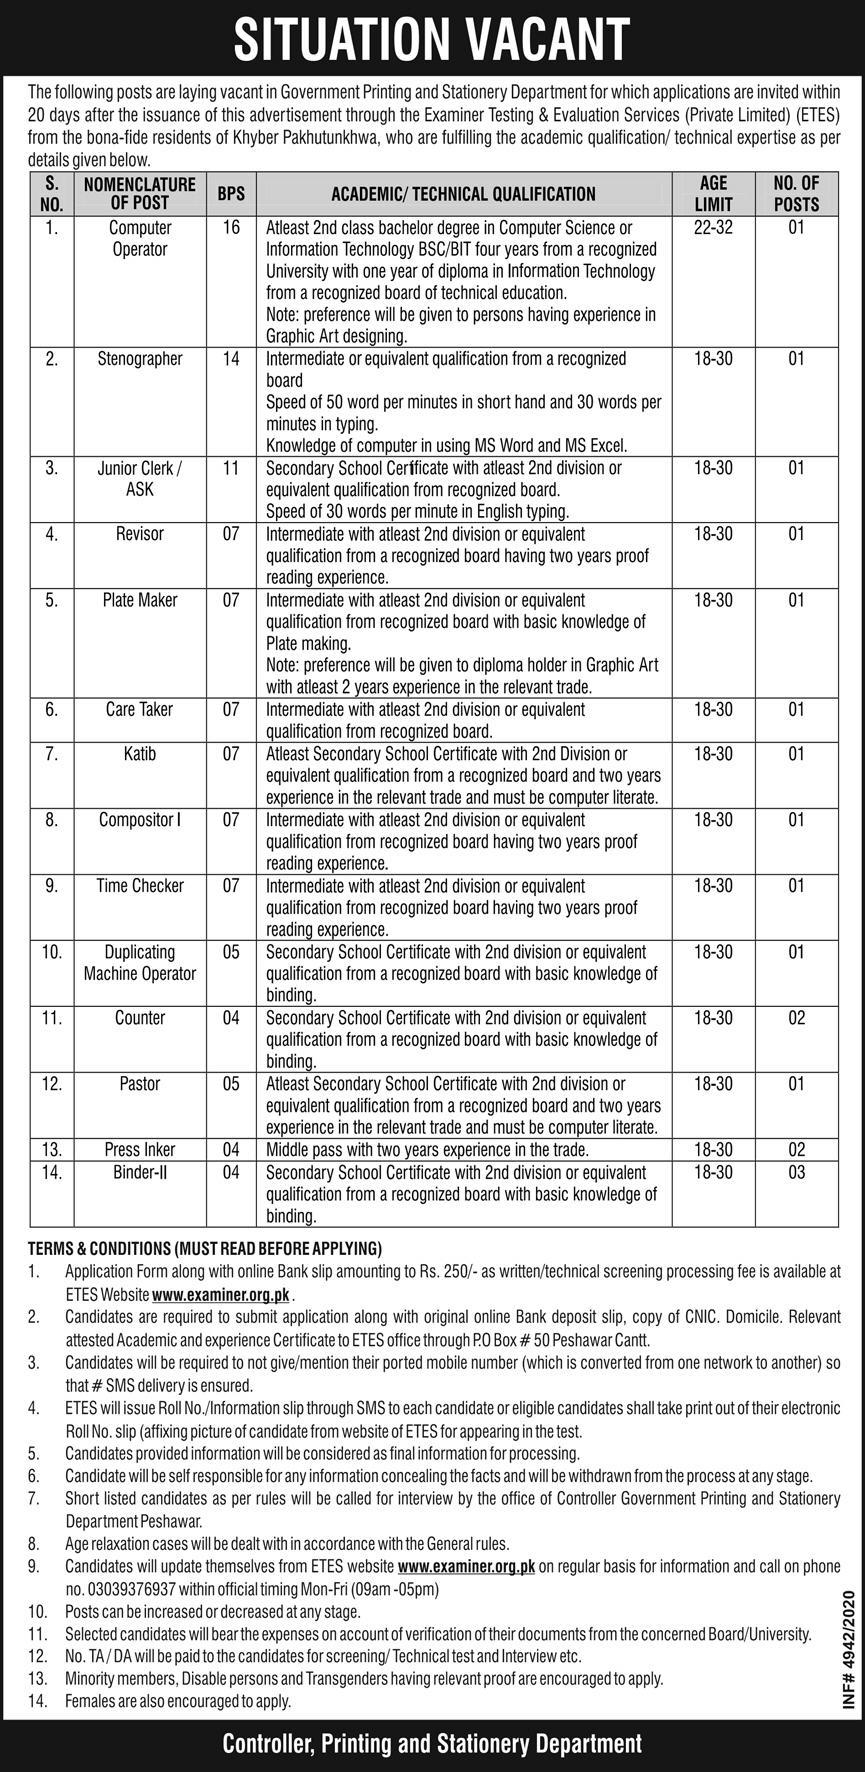 Printing & Stationery Department KPK Jobs 2021